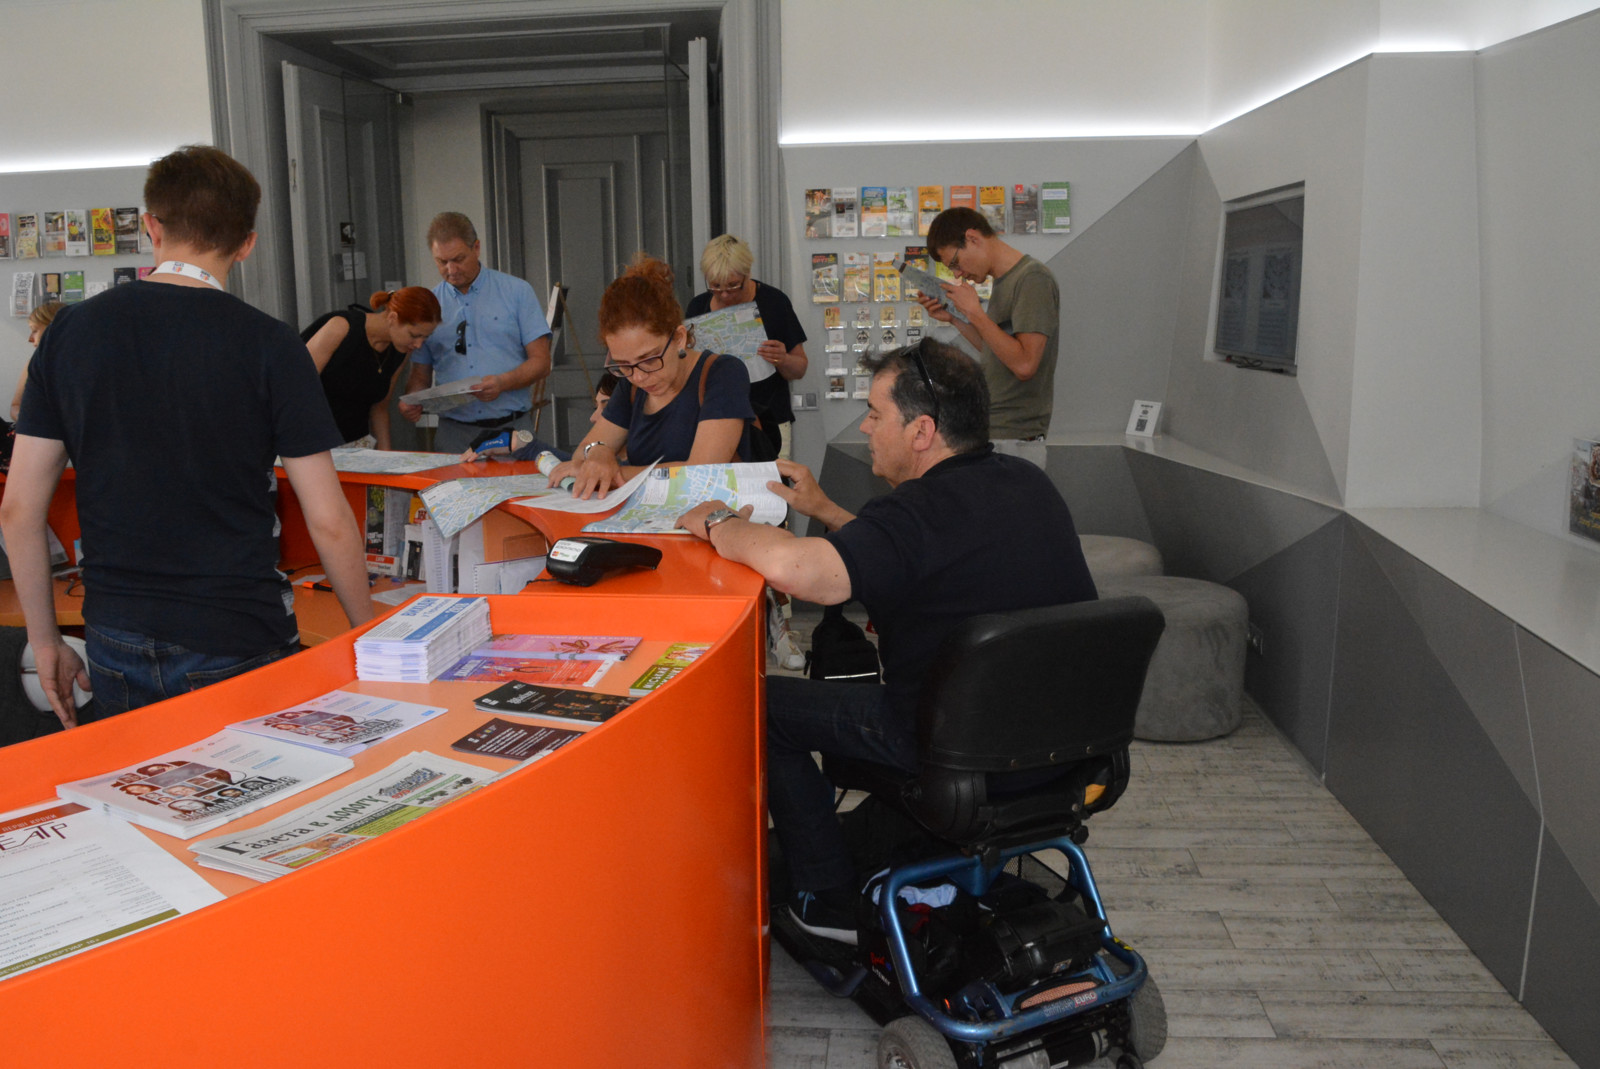 Participants on the wheelchair and with visual impairment in Lviv Tourist Information Center